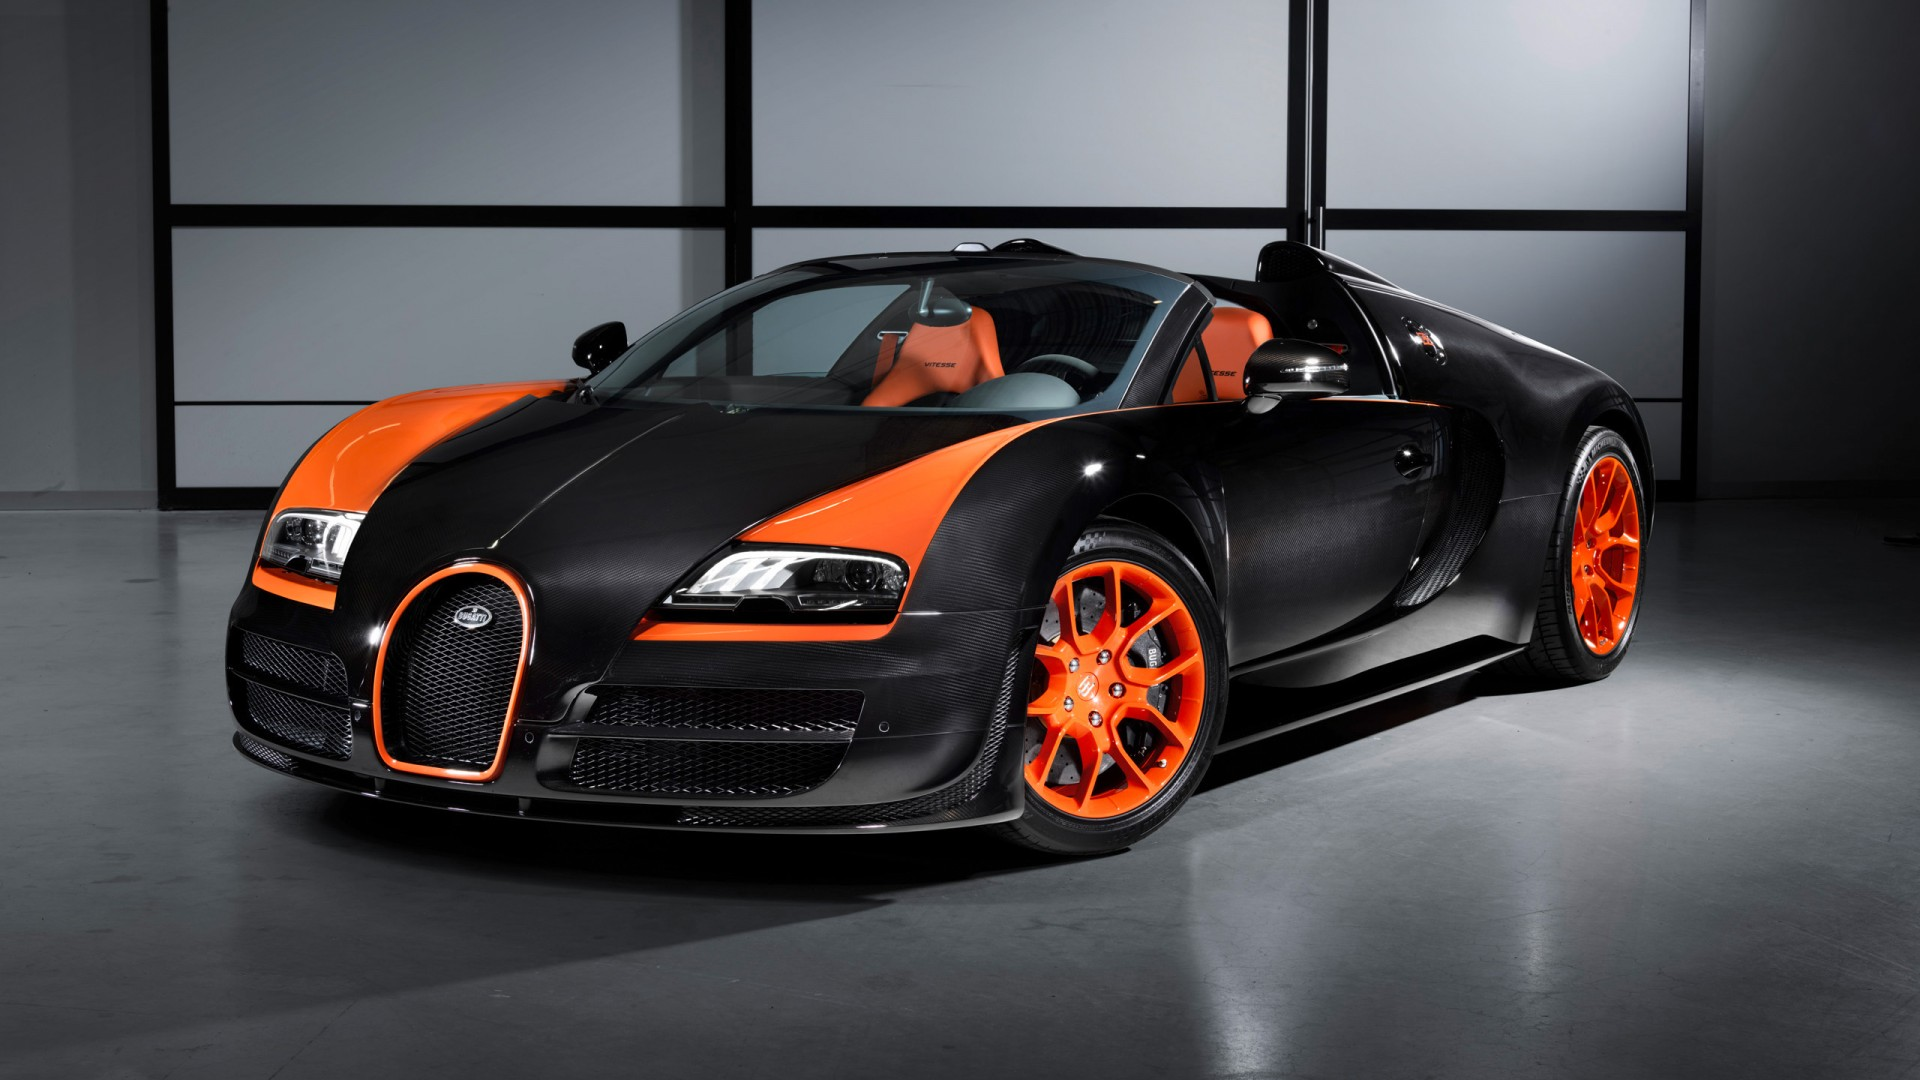 2013 bugatti veyron 16 4 grand sport vitesse world speed record wallpaper in 1920x1080 resolution. Black Bedroom Furniture Sets. Home Design Ideas